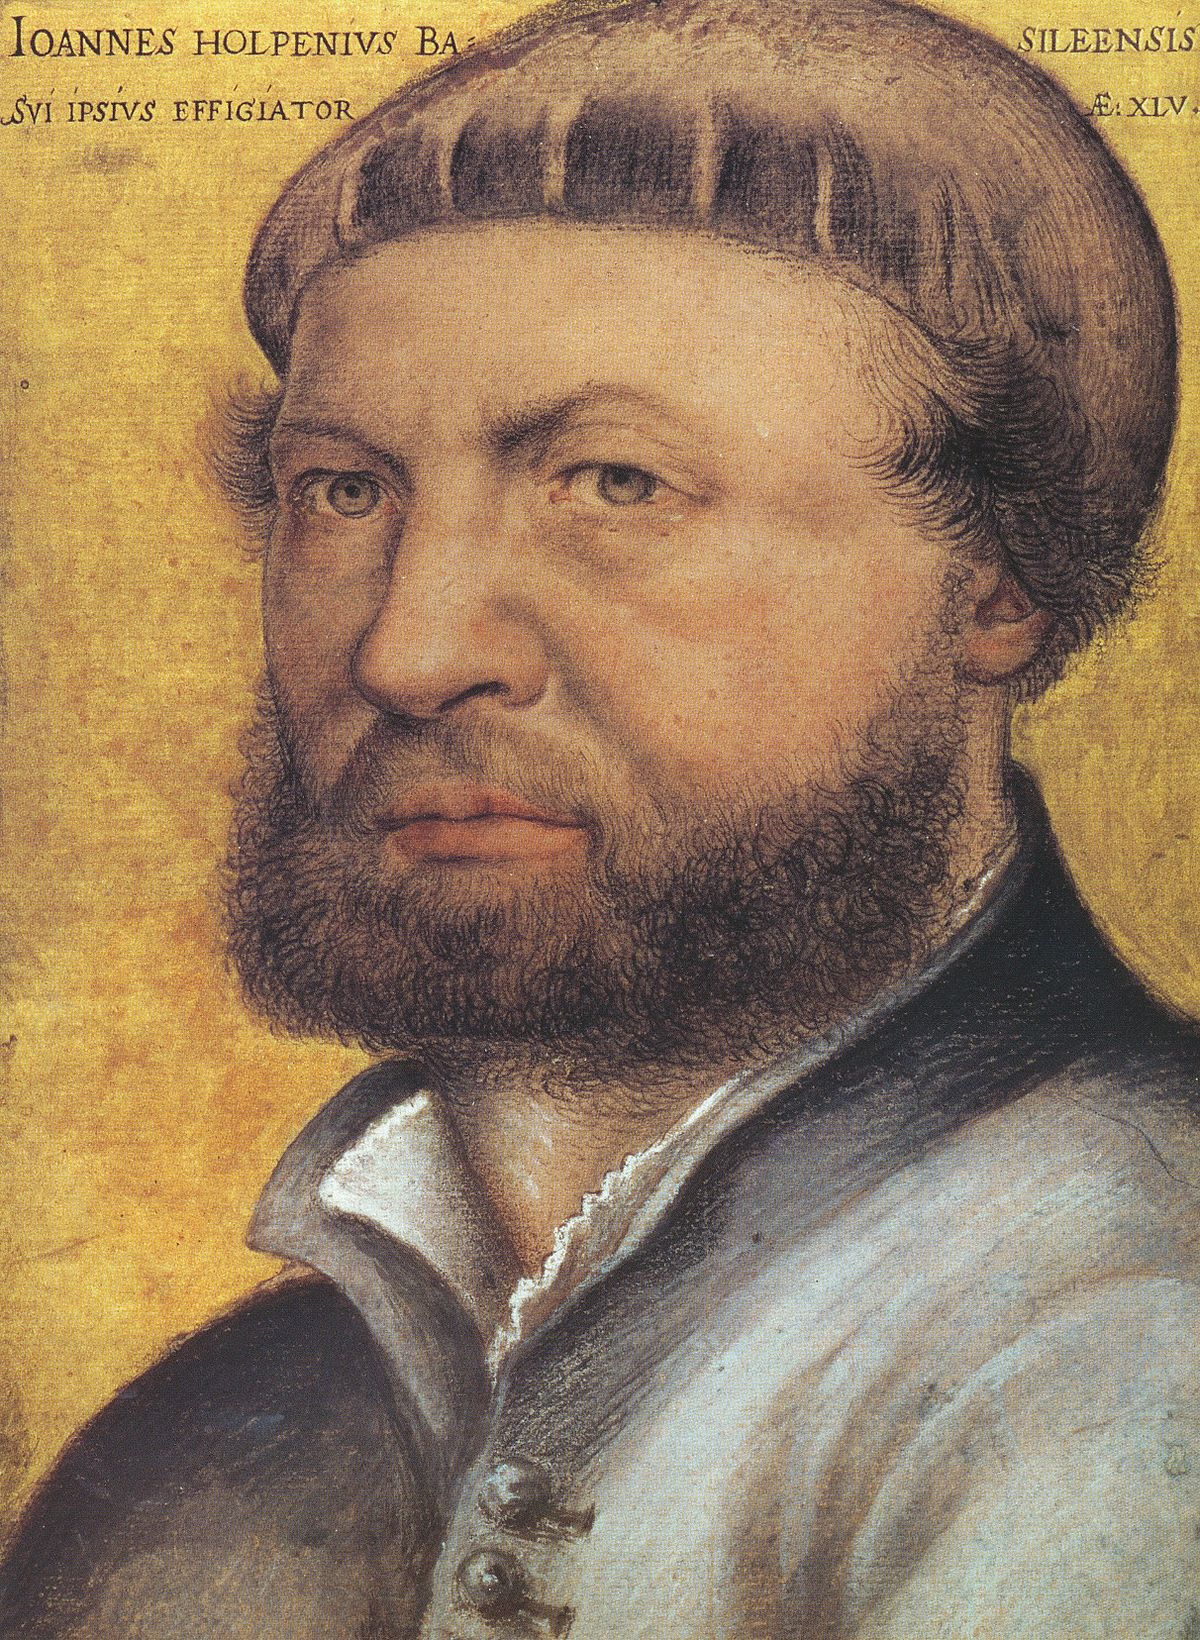 http://upload.wikimedia.org/wikipedia/commons/thumb/d/d7/Hans_Holbein_the_Younger%2C_self-portrait.jpg/1200px-Hans_Holbein_the_Younger%2C_self-portrait.jpg